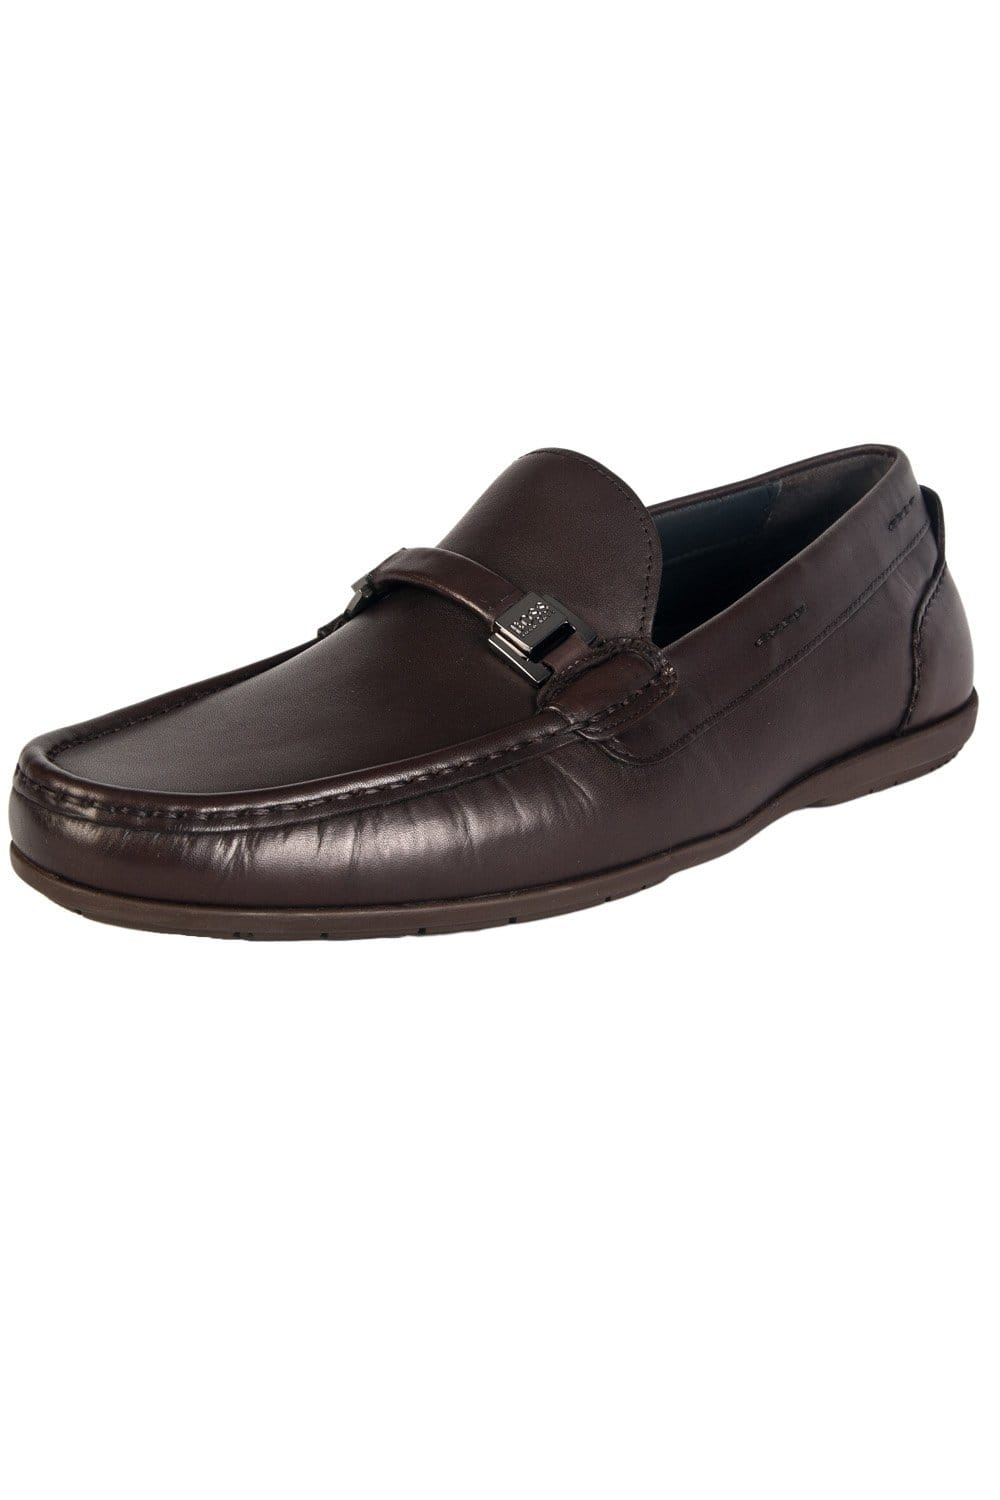 Leather Shoes For Chinos